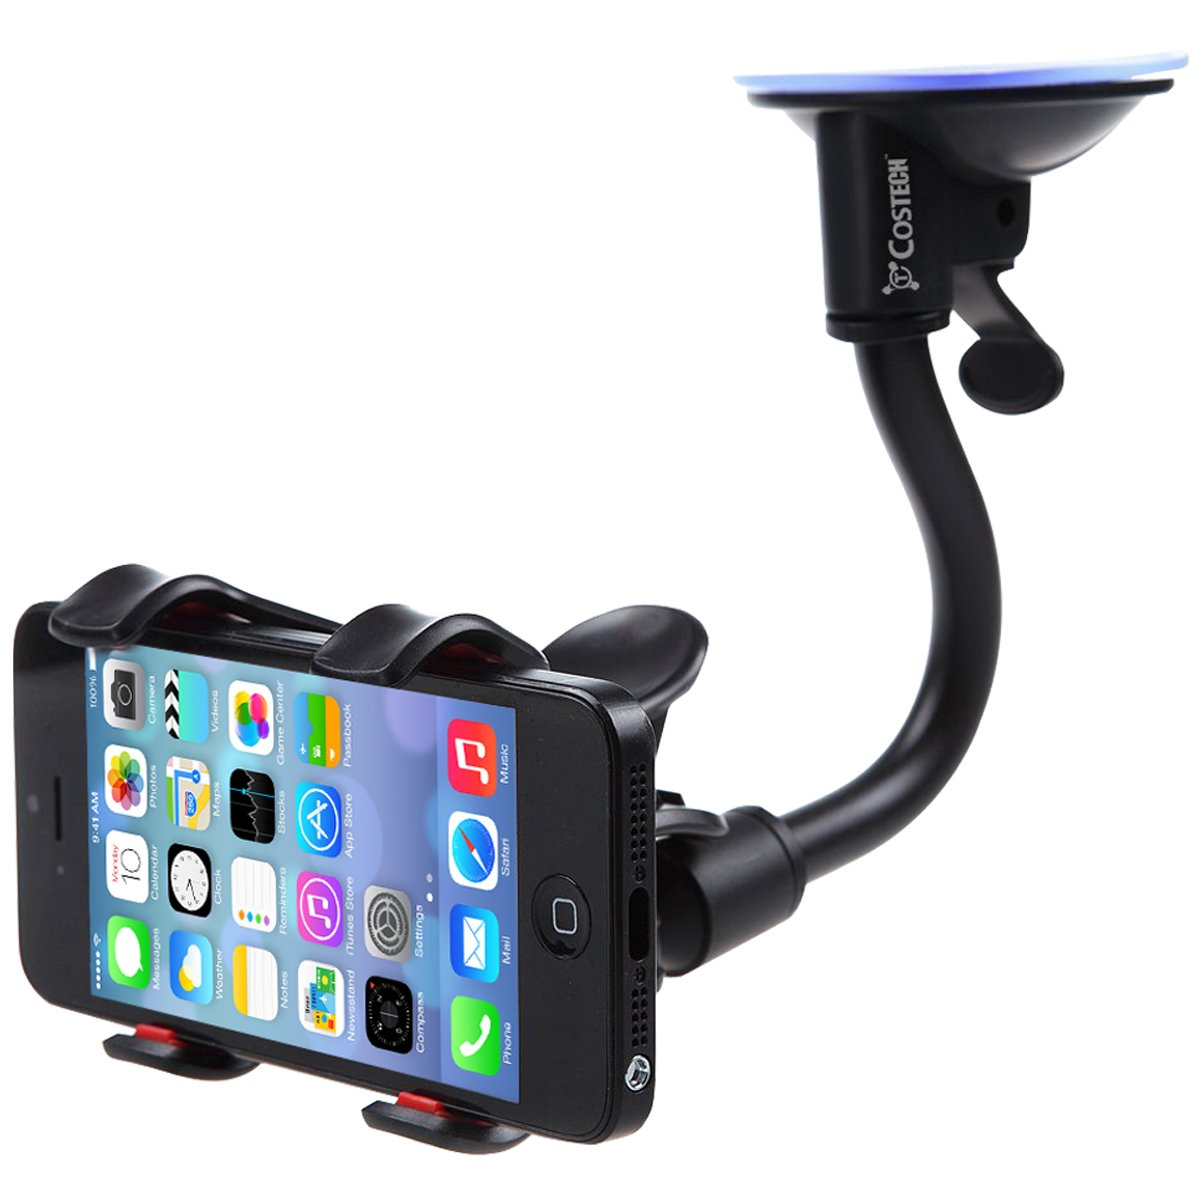 1 Pack Costech Soft Tube Universal Windshield Dashboard GPS Stand Bracket Holder Clamp for iPhone,Samsung Galaxy,Other 3.5-6.3In Smart Phone Car Mount 4476206